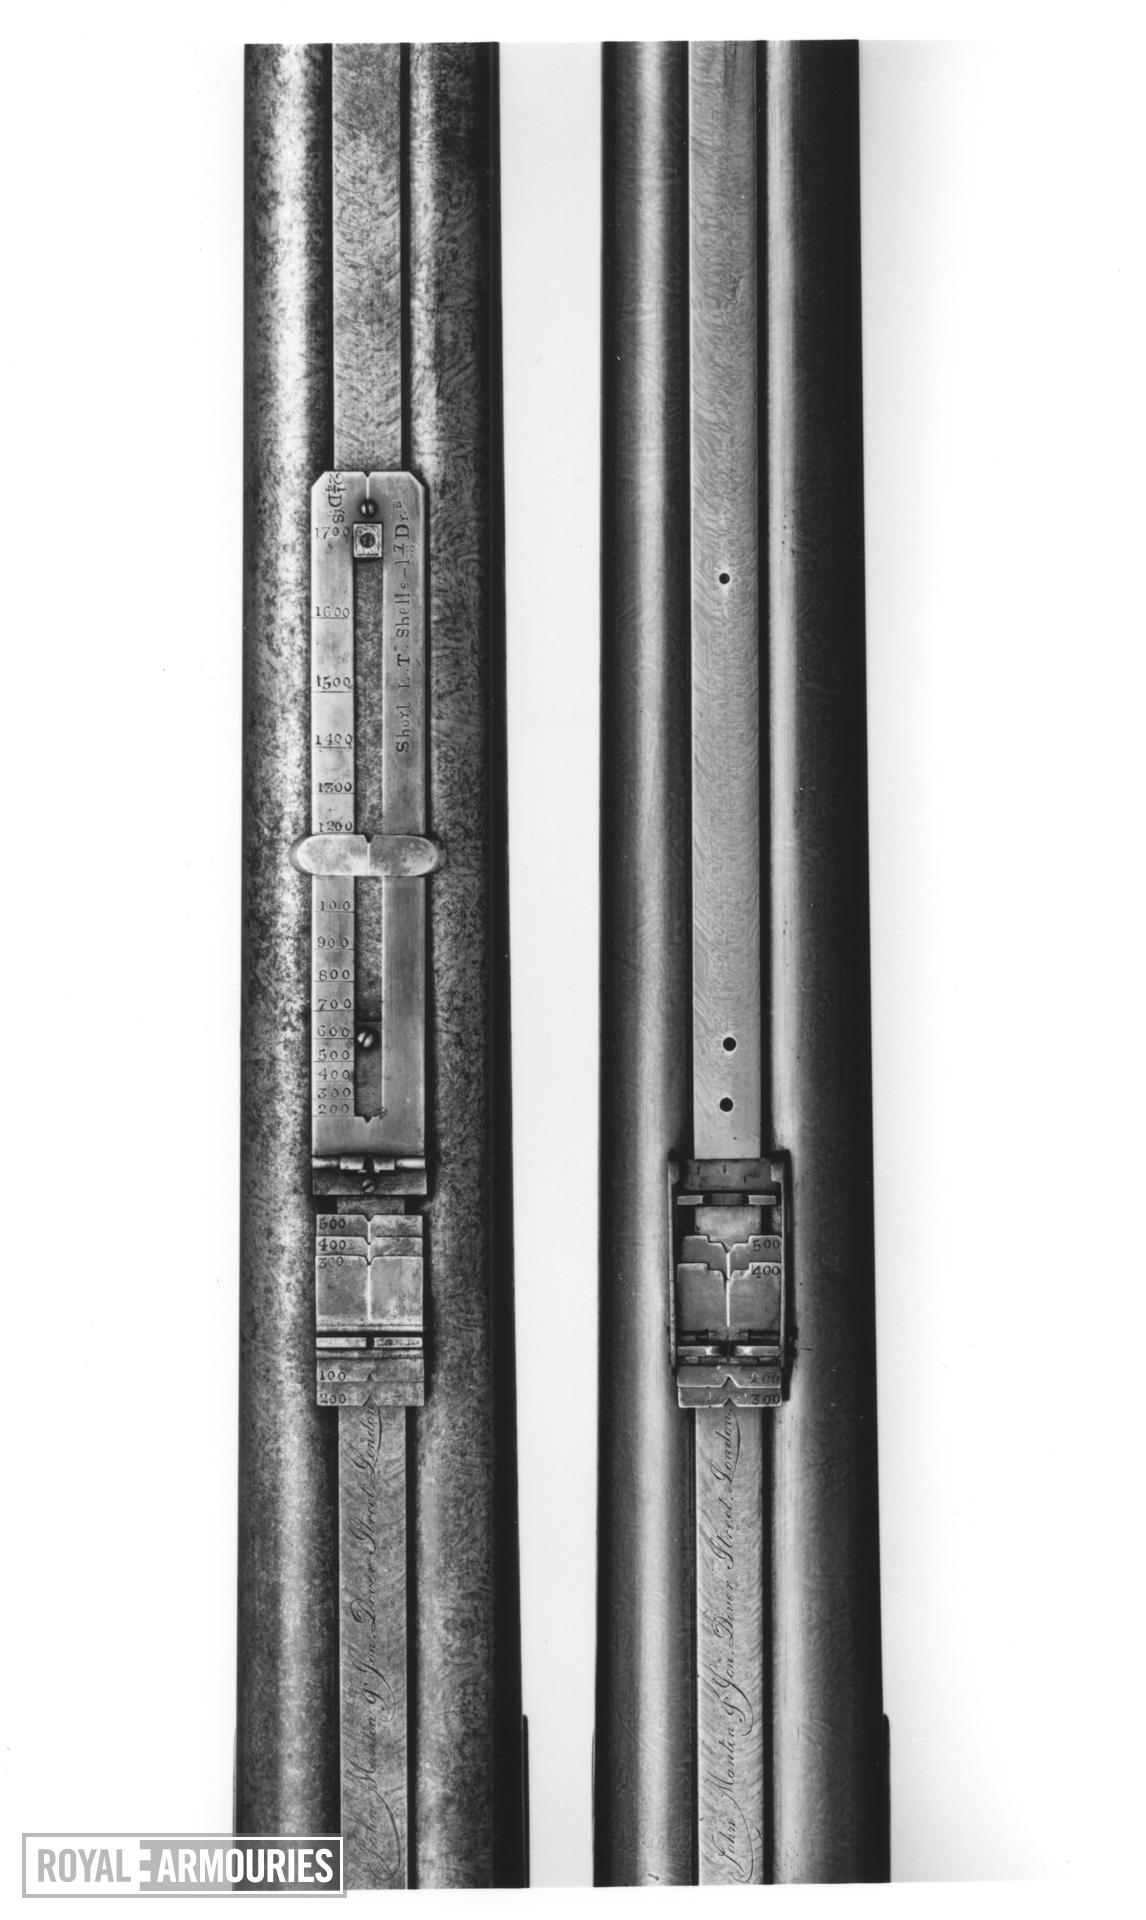 Percussion muzzle-loading double-barrelled rifle - By John Manton and Son For Lt.Col. John Jacob, Cased for case see XII.10637 A